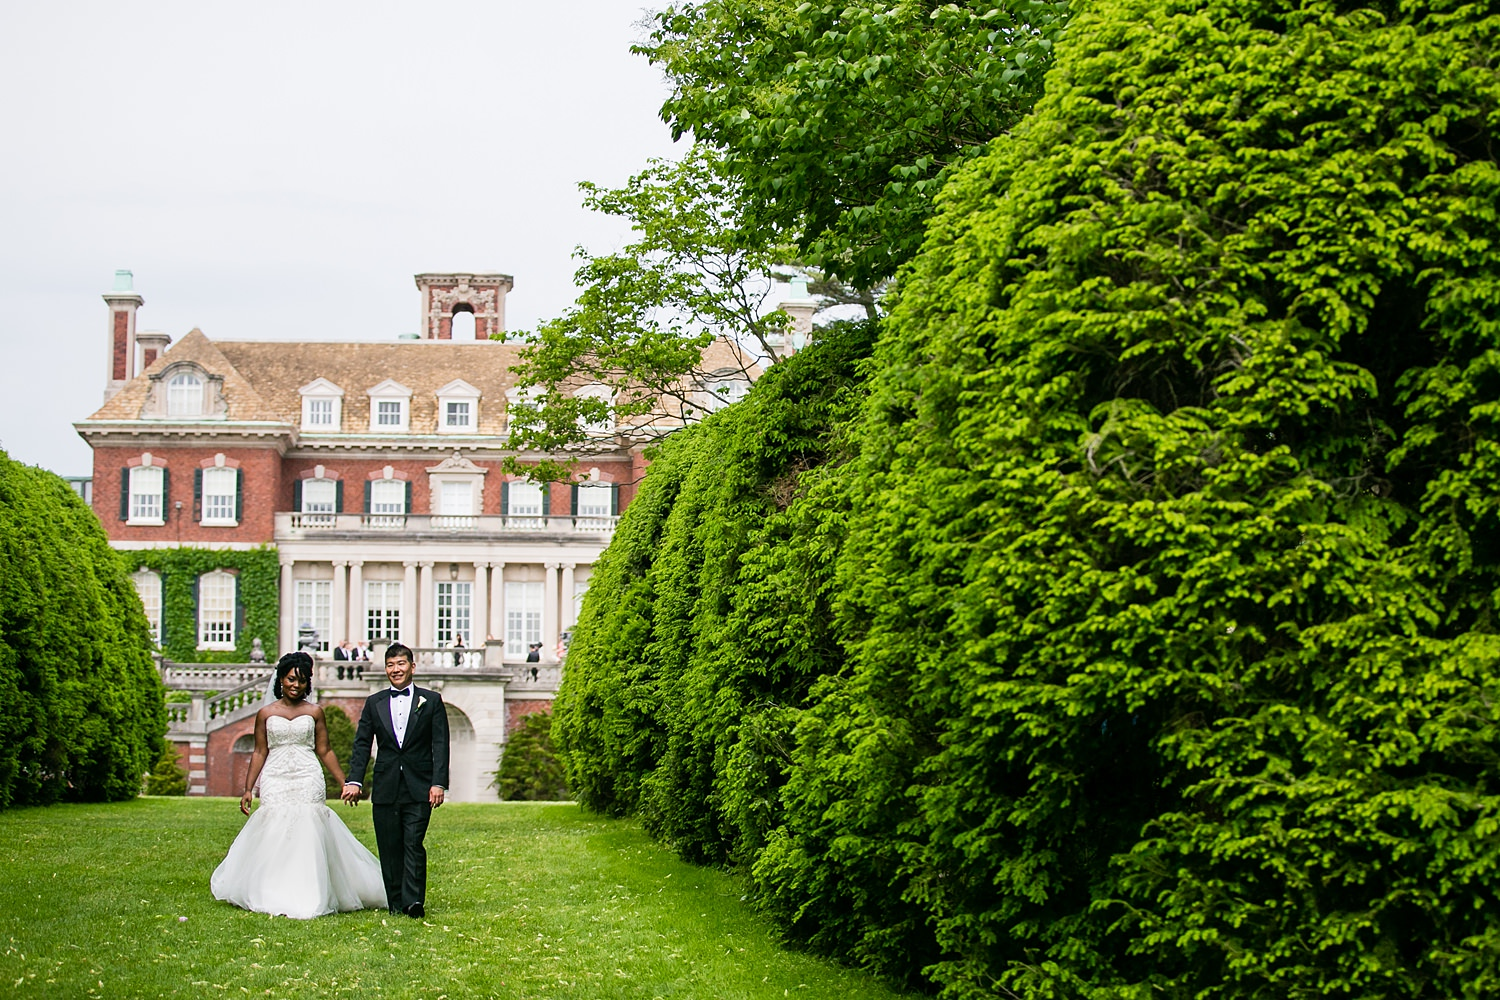 blasian bride and groom walking at Old Westbury Gardens